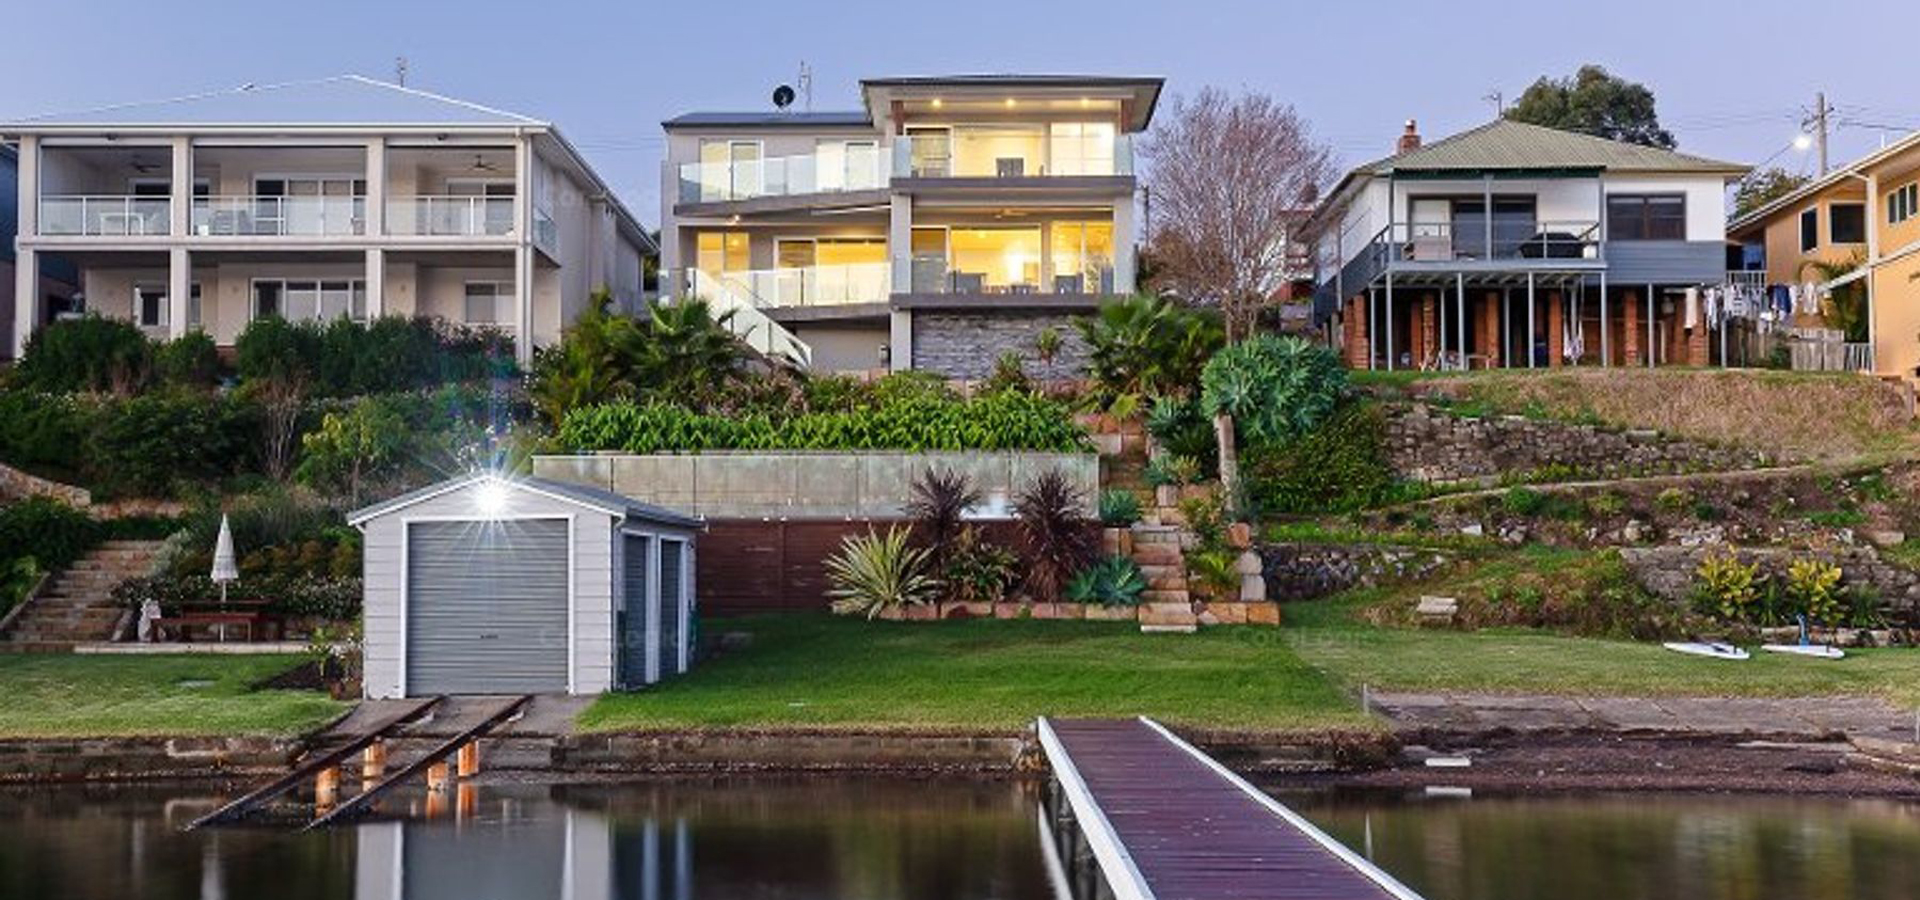 Waterfront Properties At Lake Macquarie: What Makes Them So Valuable?